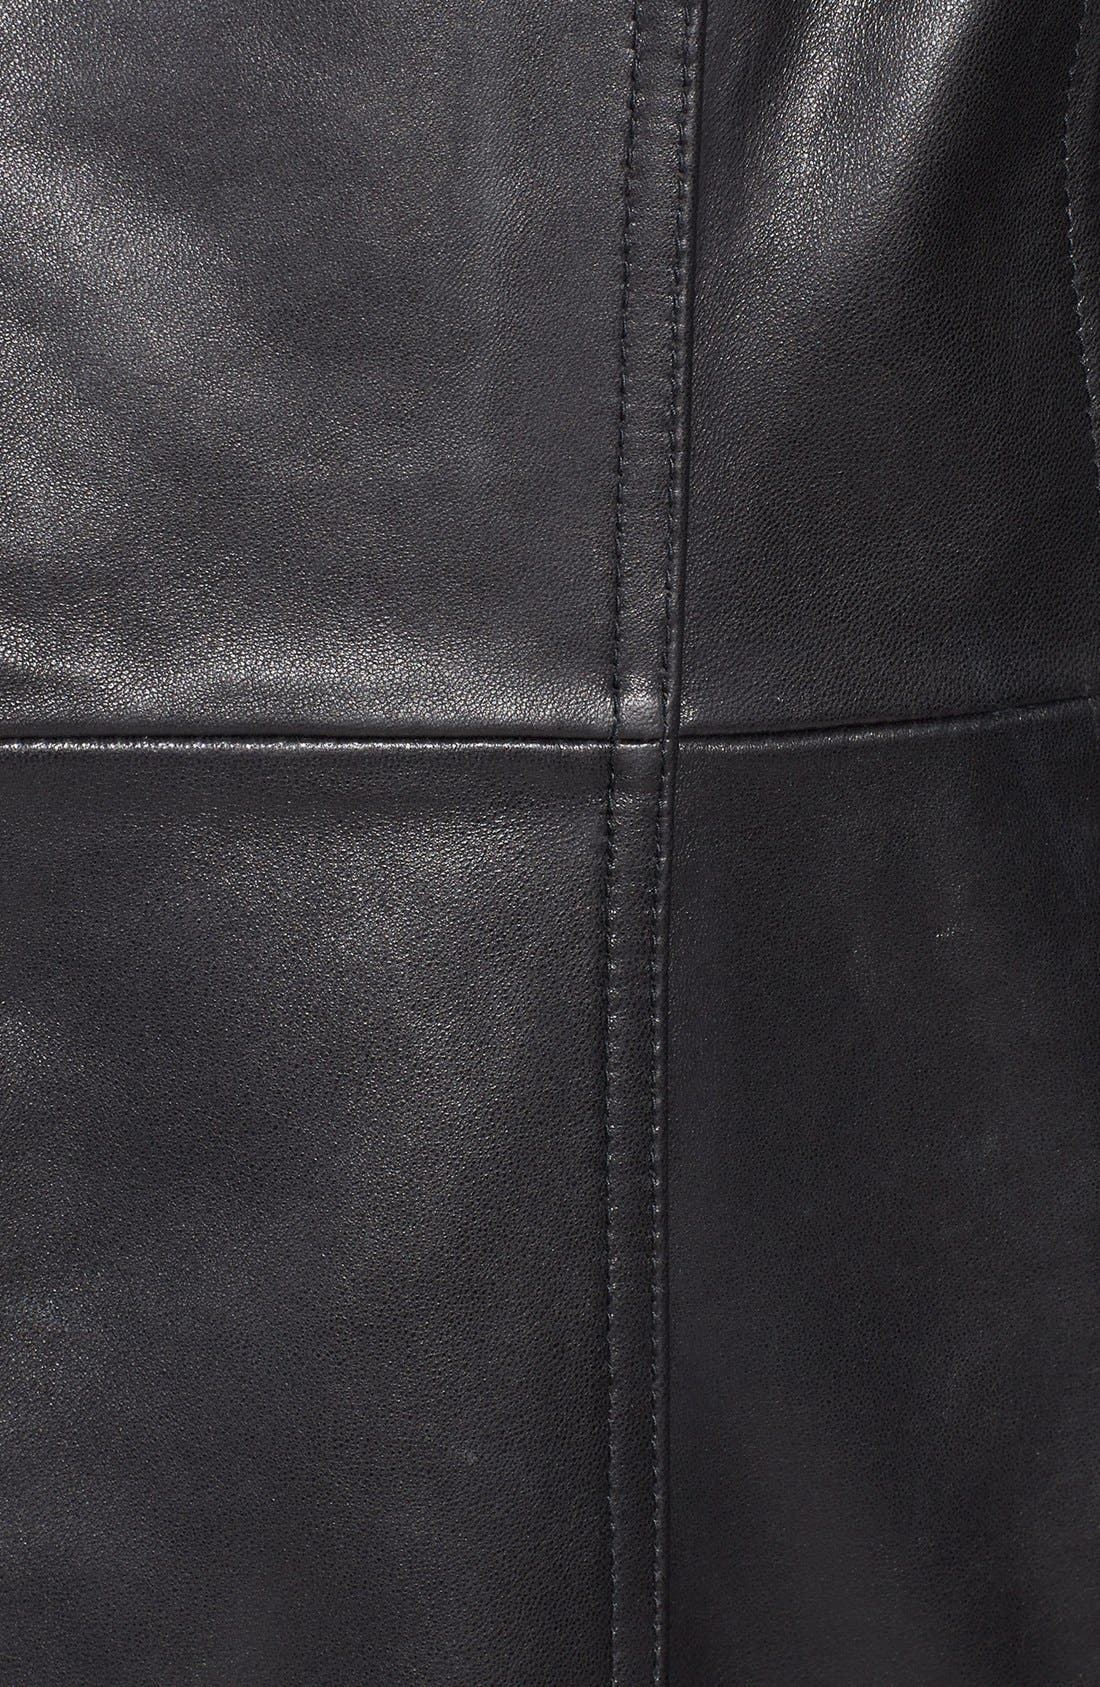 Leather Walking Coat,                             Alternate thumbnail 3, color,                             001